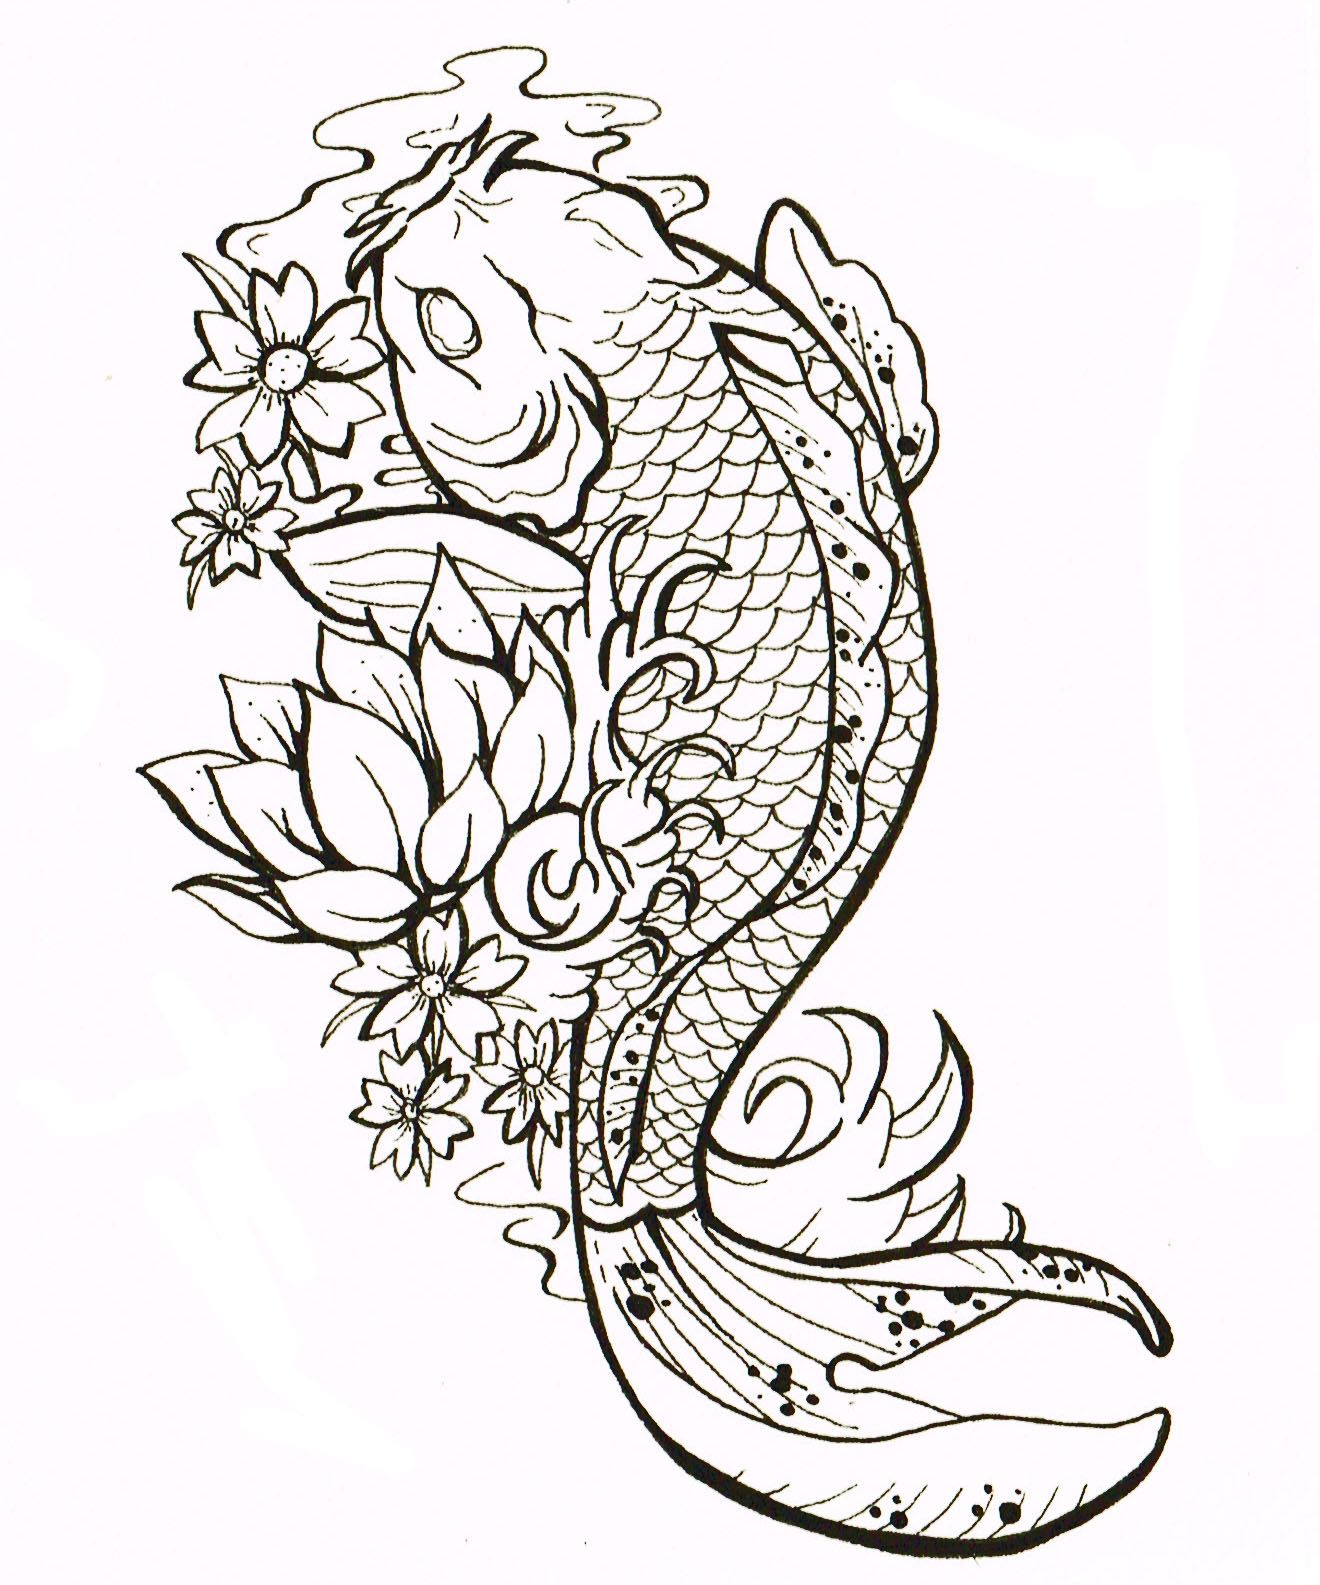 45 amazing japanese tattoo designs tattoo easily - No Outline Tattoo Style Gemma Louise Hawkins Koi Carp